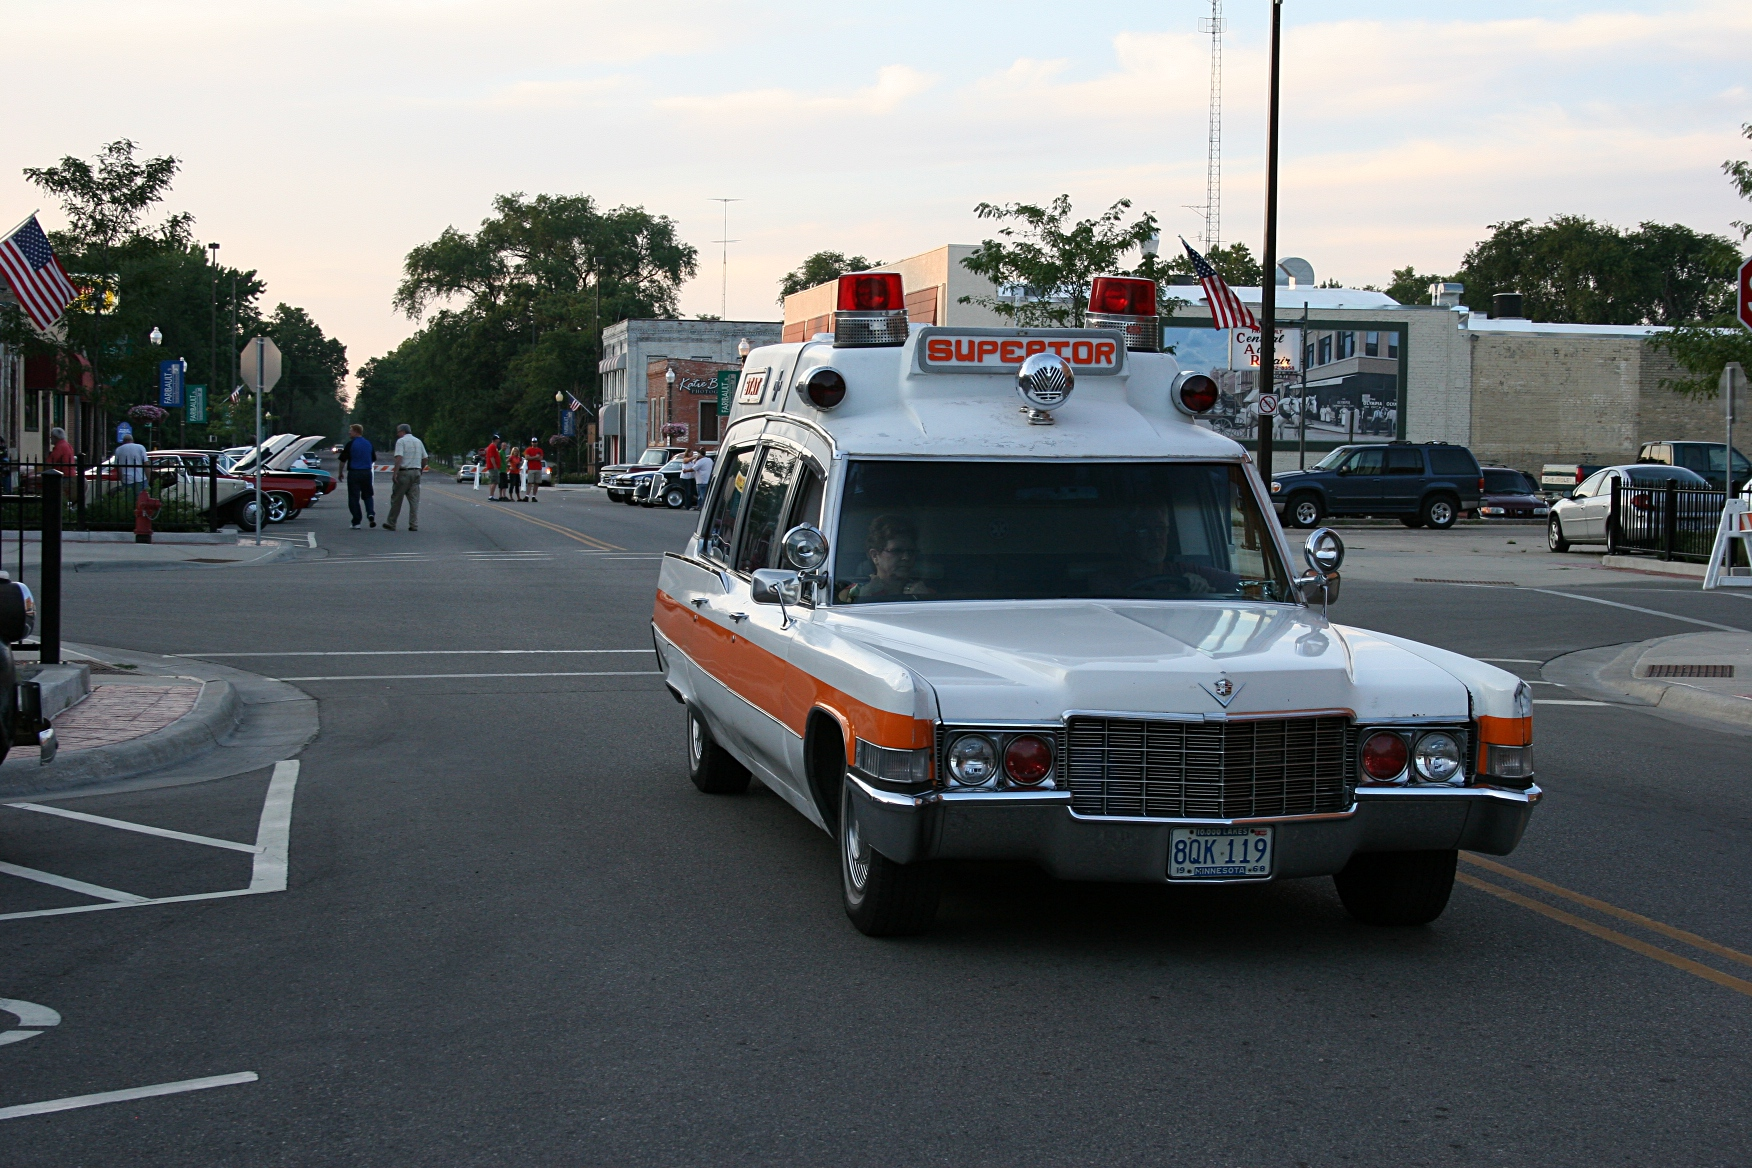 Cadillac Ambulance For Sale Craigslist Autos Post